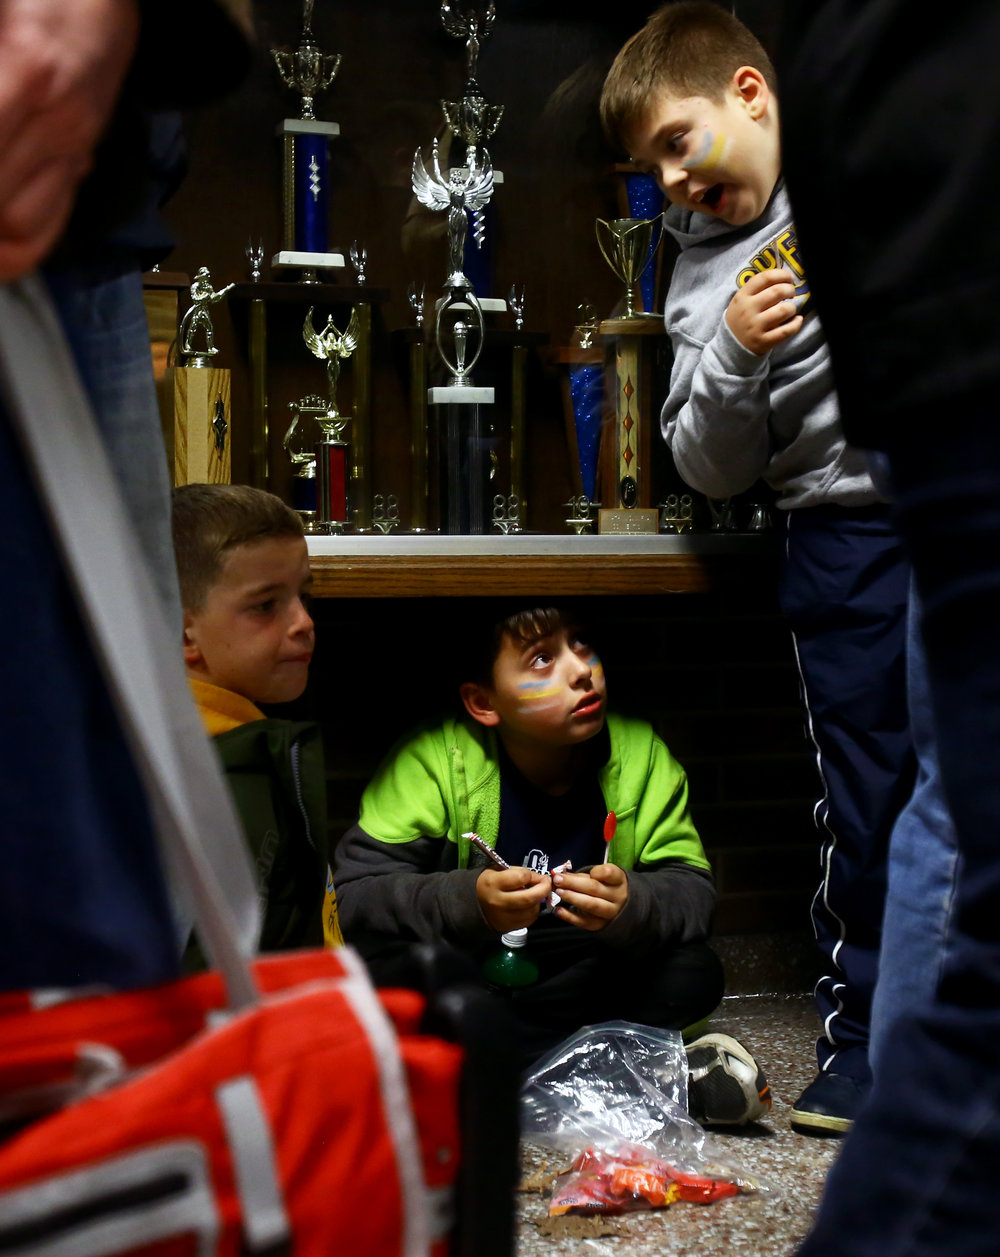 Ryne Maag, left, Andrew Eschbach, center, and Brady Thomas, right, sit by the trophy case in Napoleon High School as they take shelter from the high winds and rain delaying the the OSHAA Div. VI final football game between Patrick Henry High School and Ayersville High School in Napoleon, Oh. High School on Friday, Nov. 18, 2016.